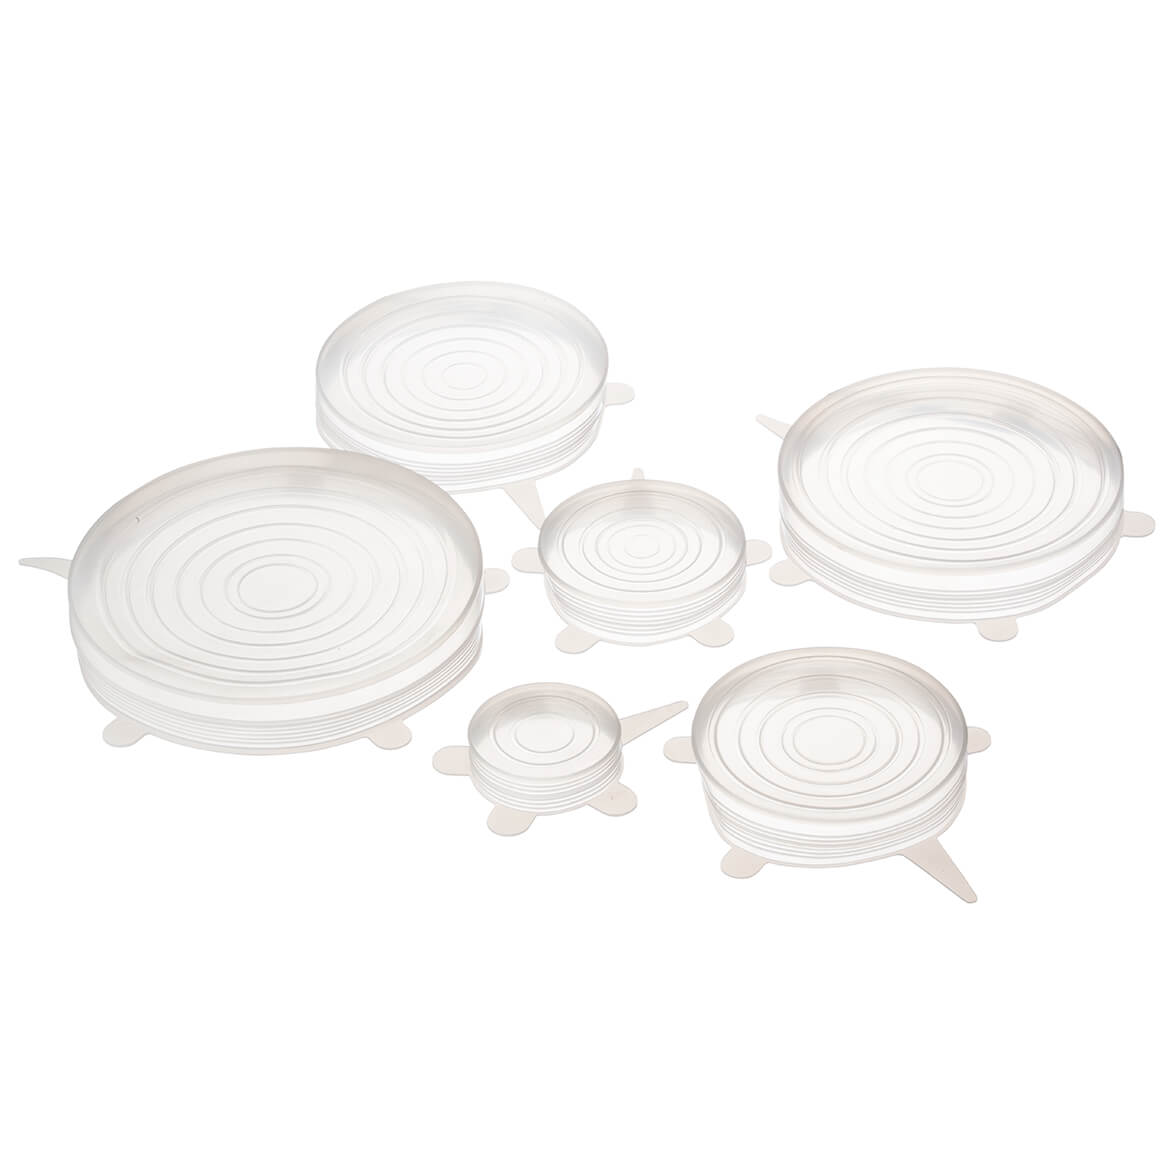 Silicone Stretch Storage Lids, Set of 6-366682